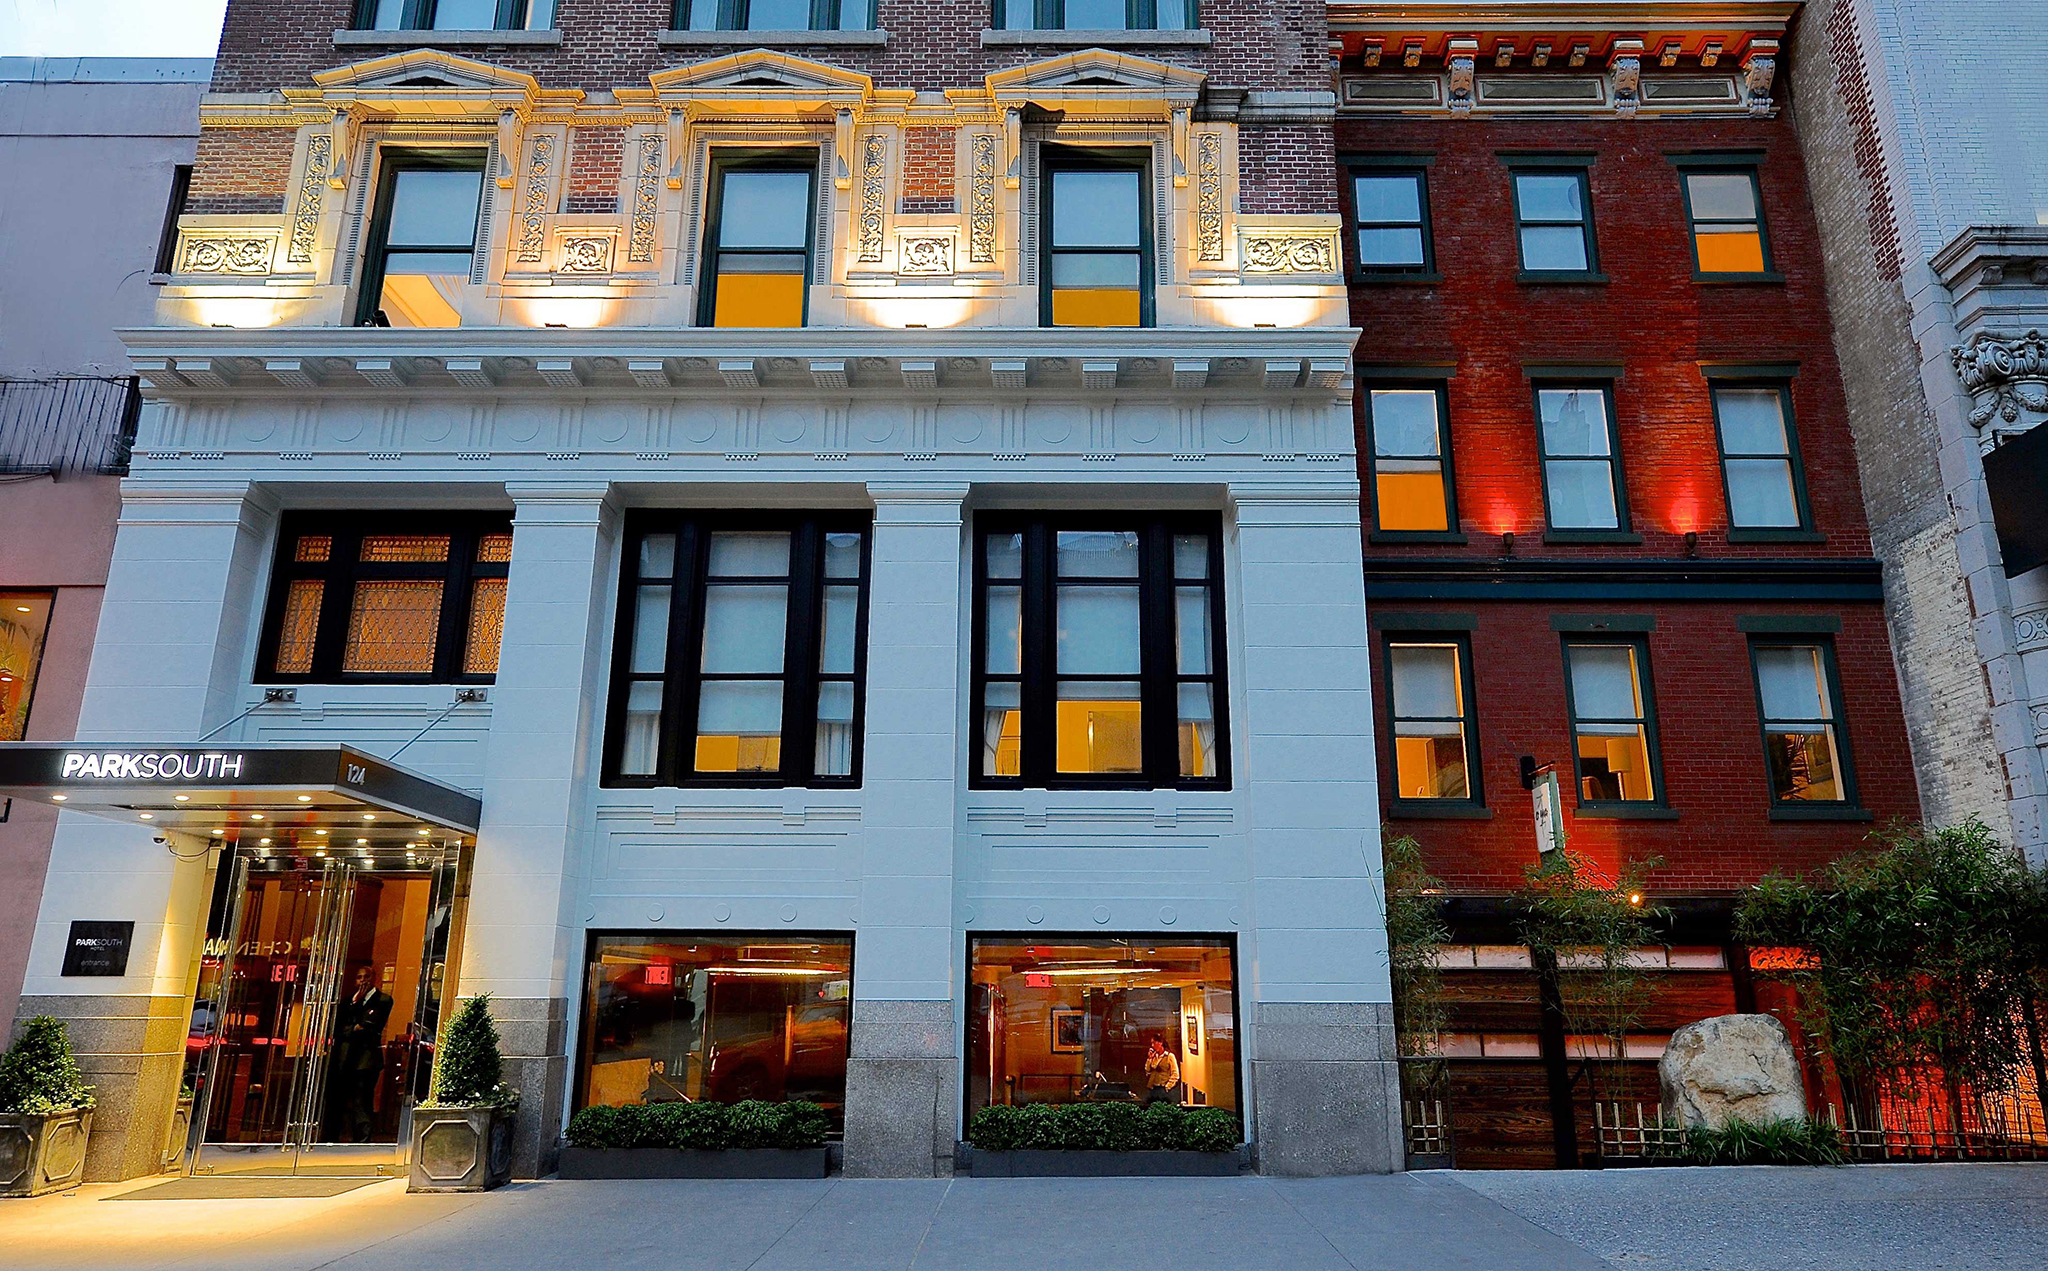 Best 4 star hotels in nyc for an unforgettable vacation